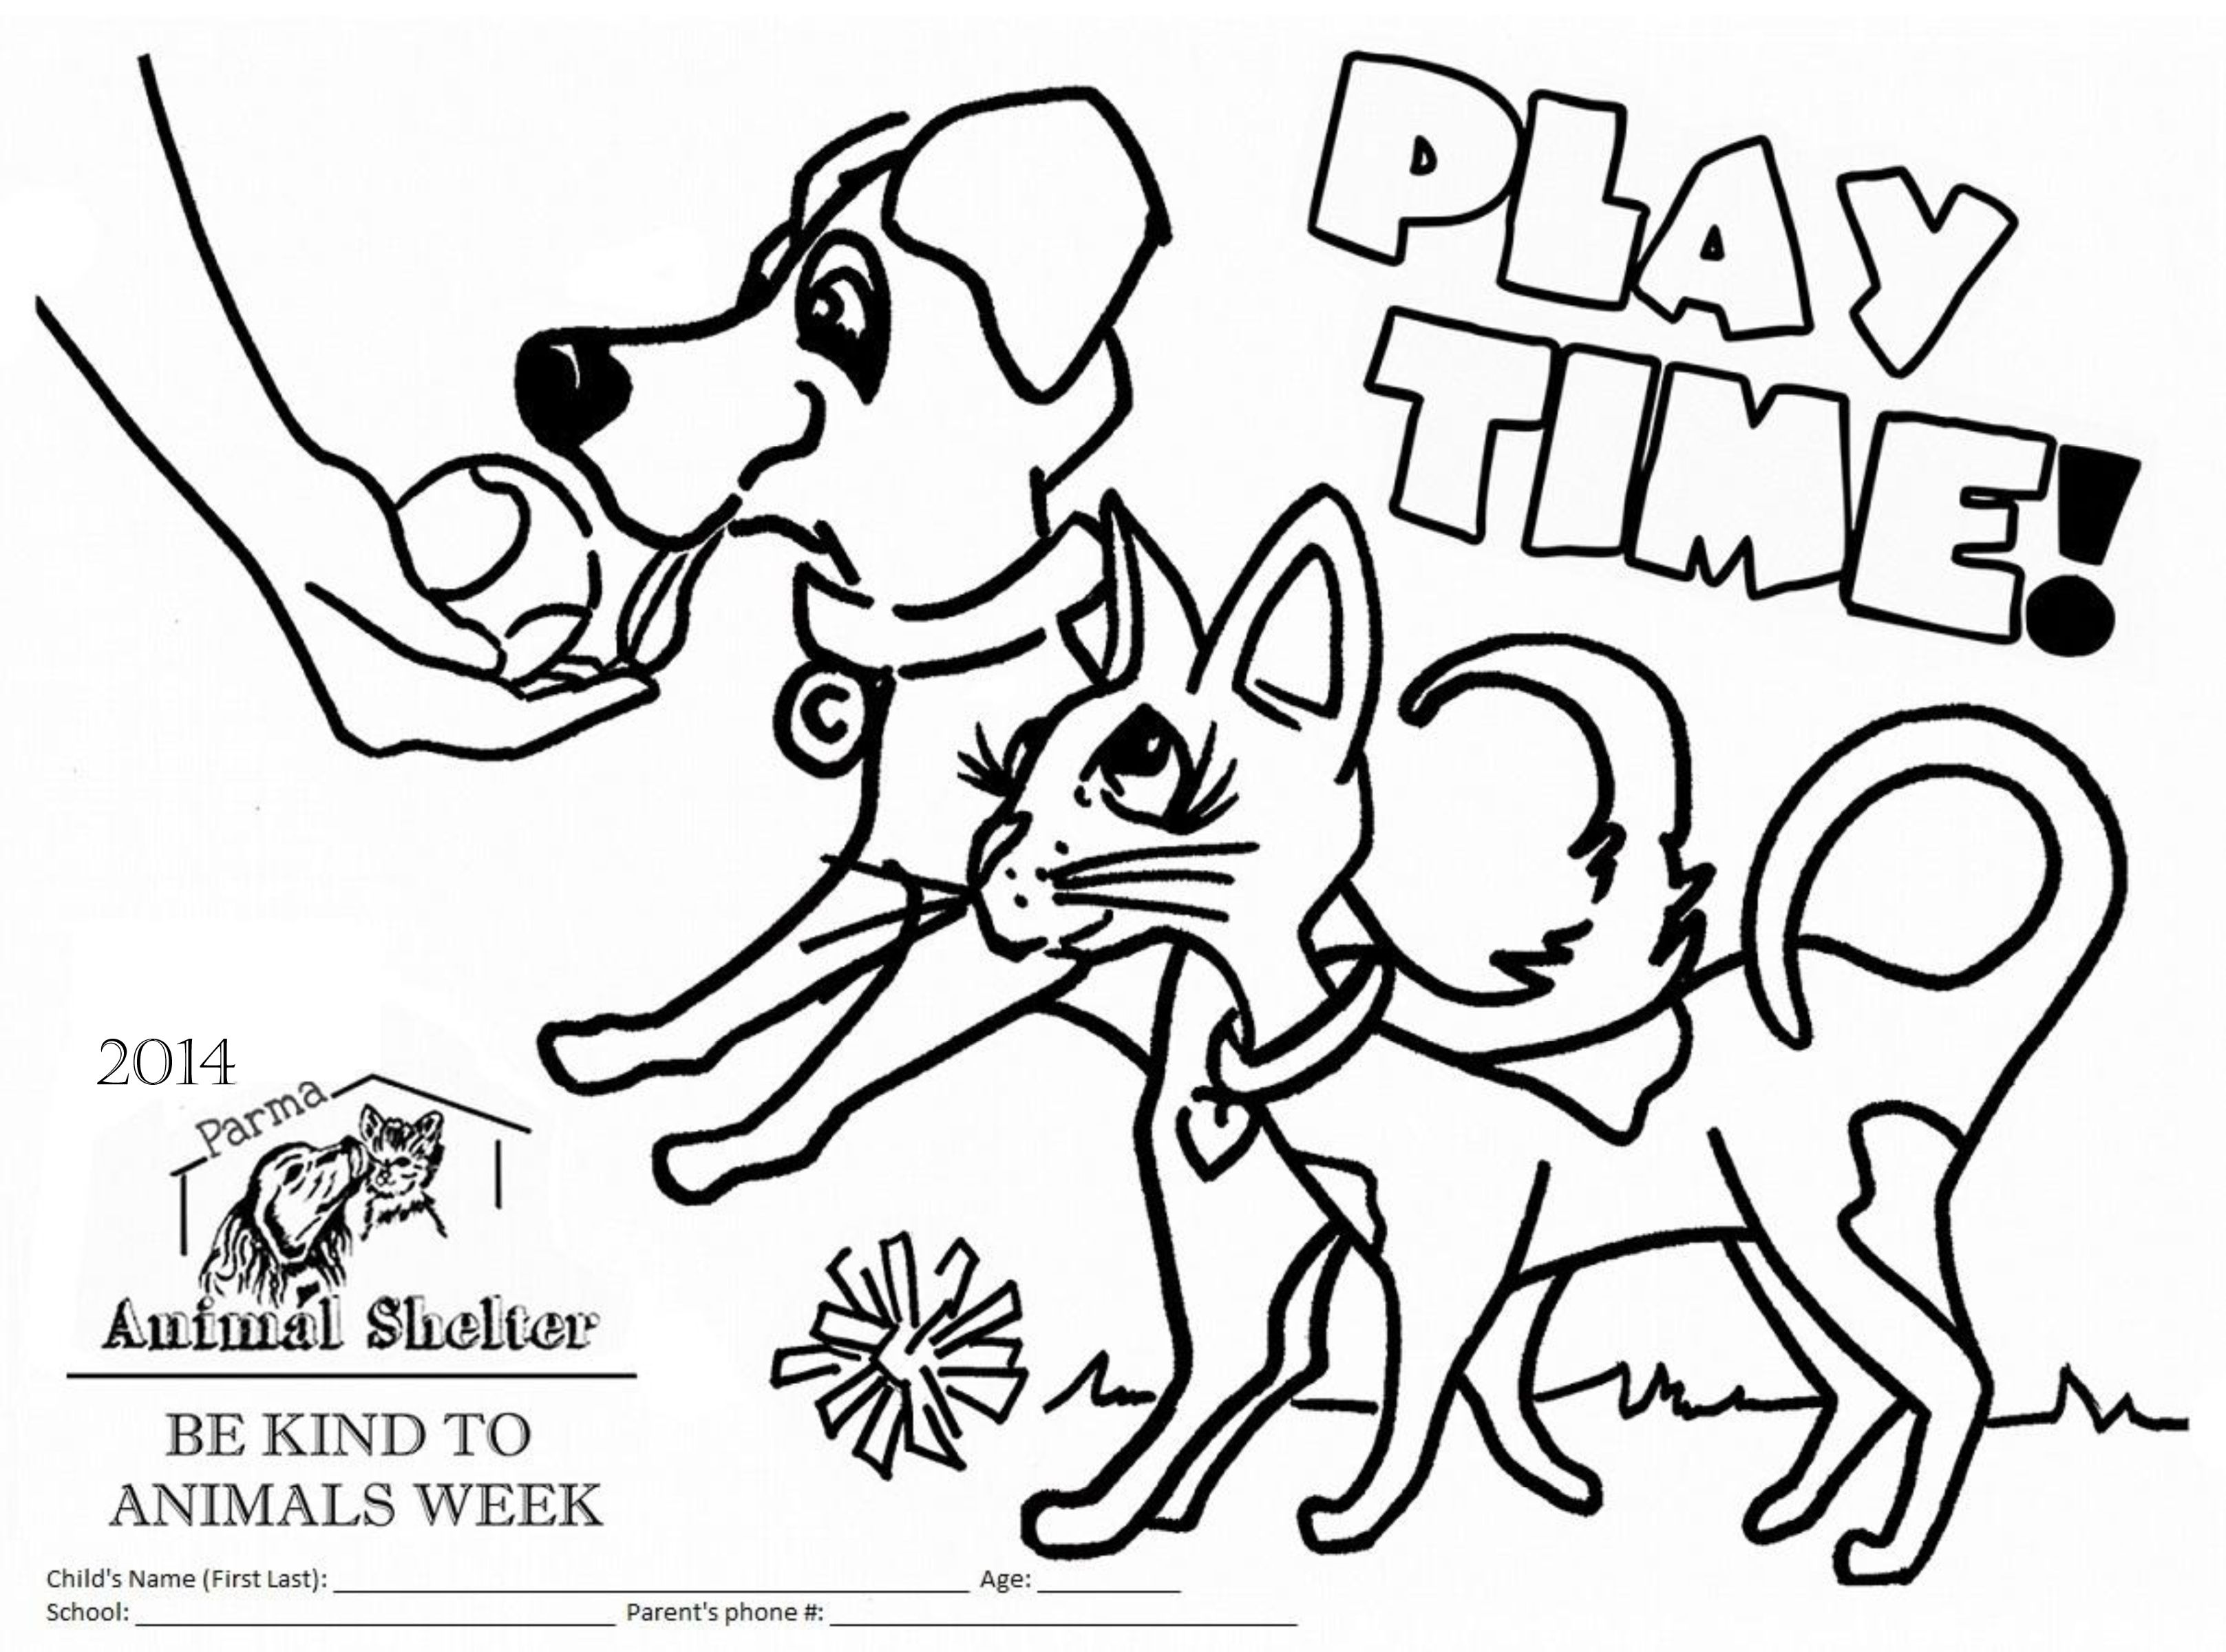 Coloring Page For The Parma Animal Shelters 2014 Be Kind To